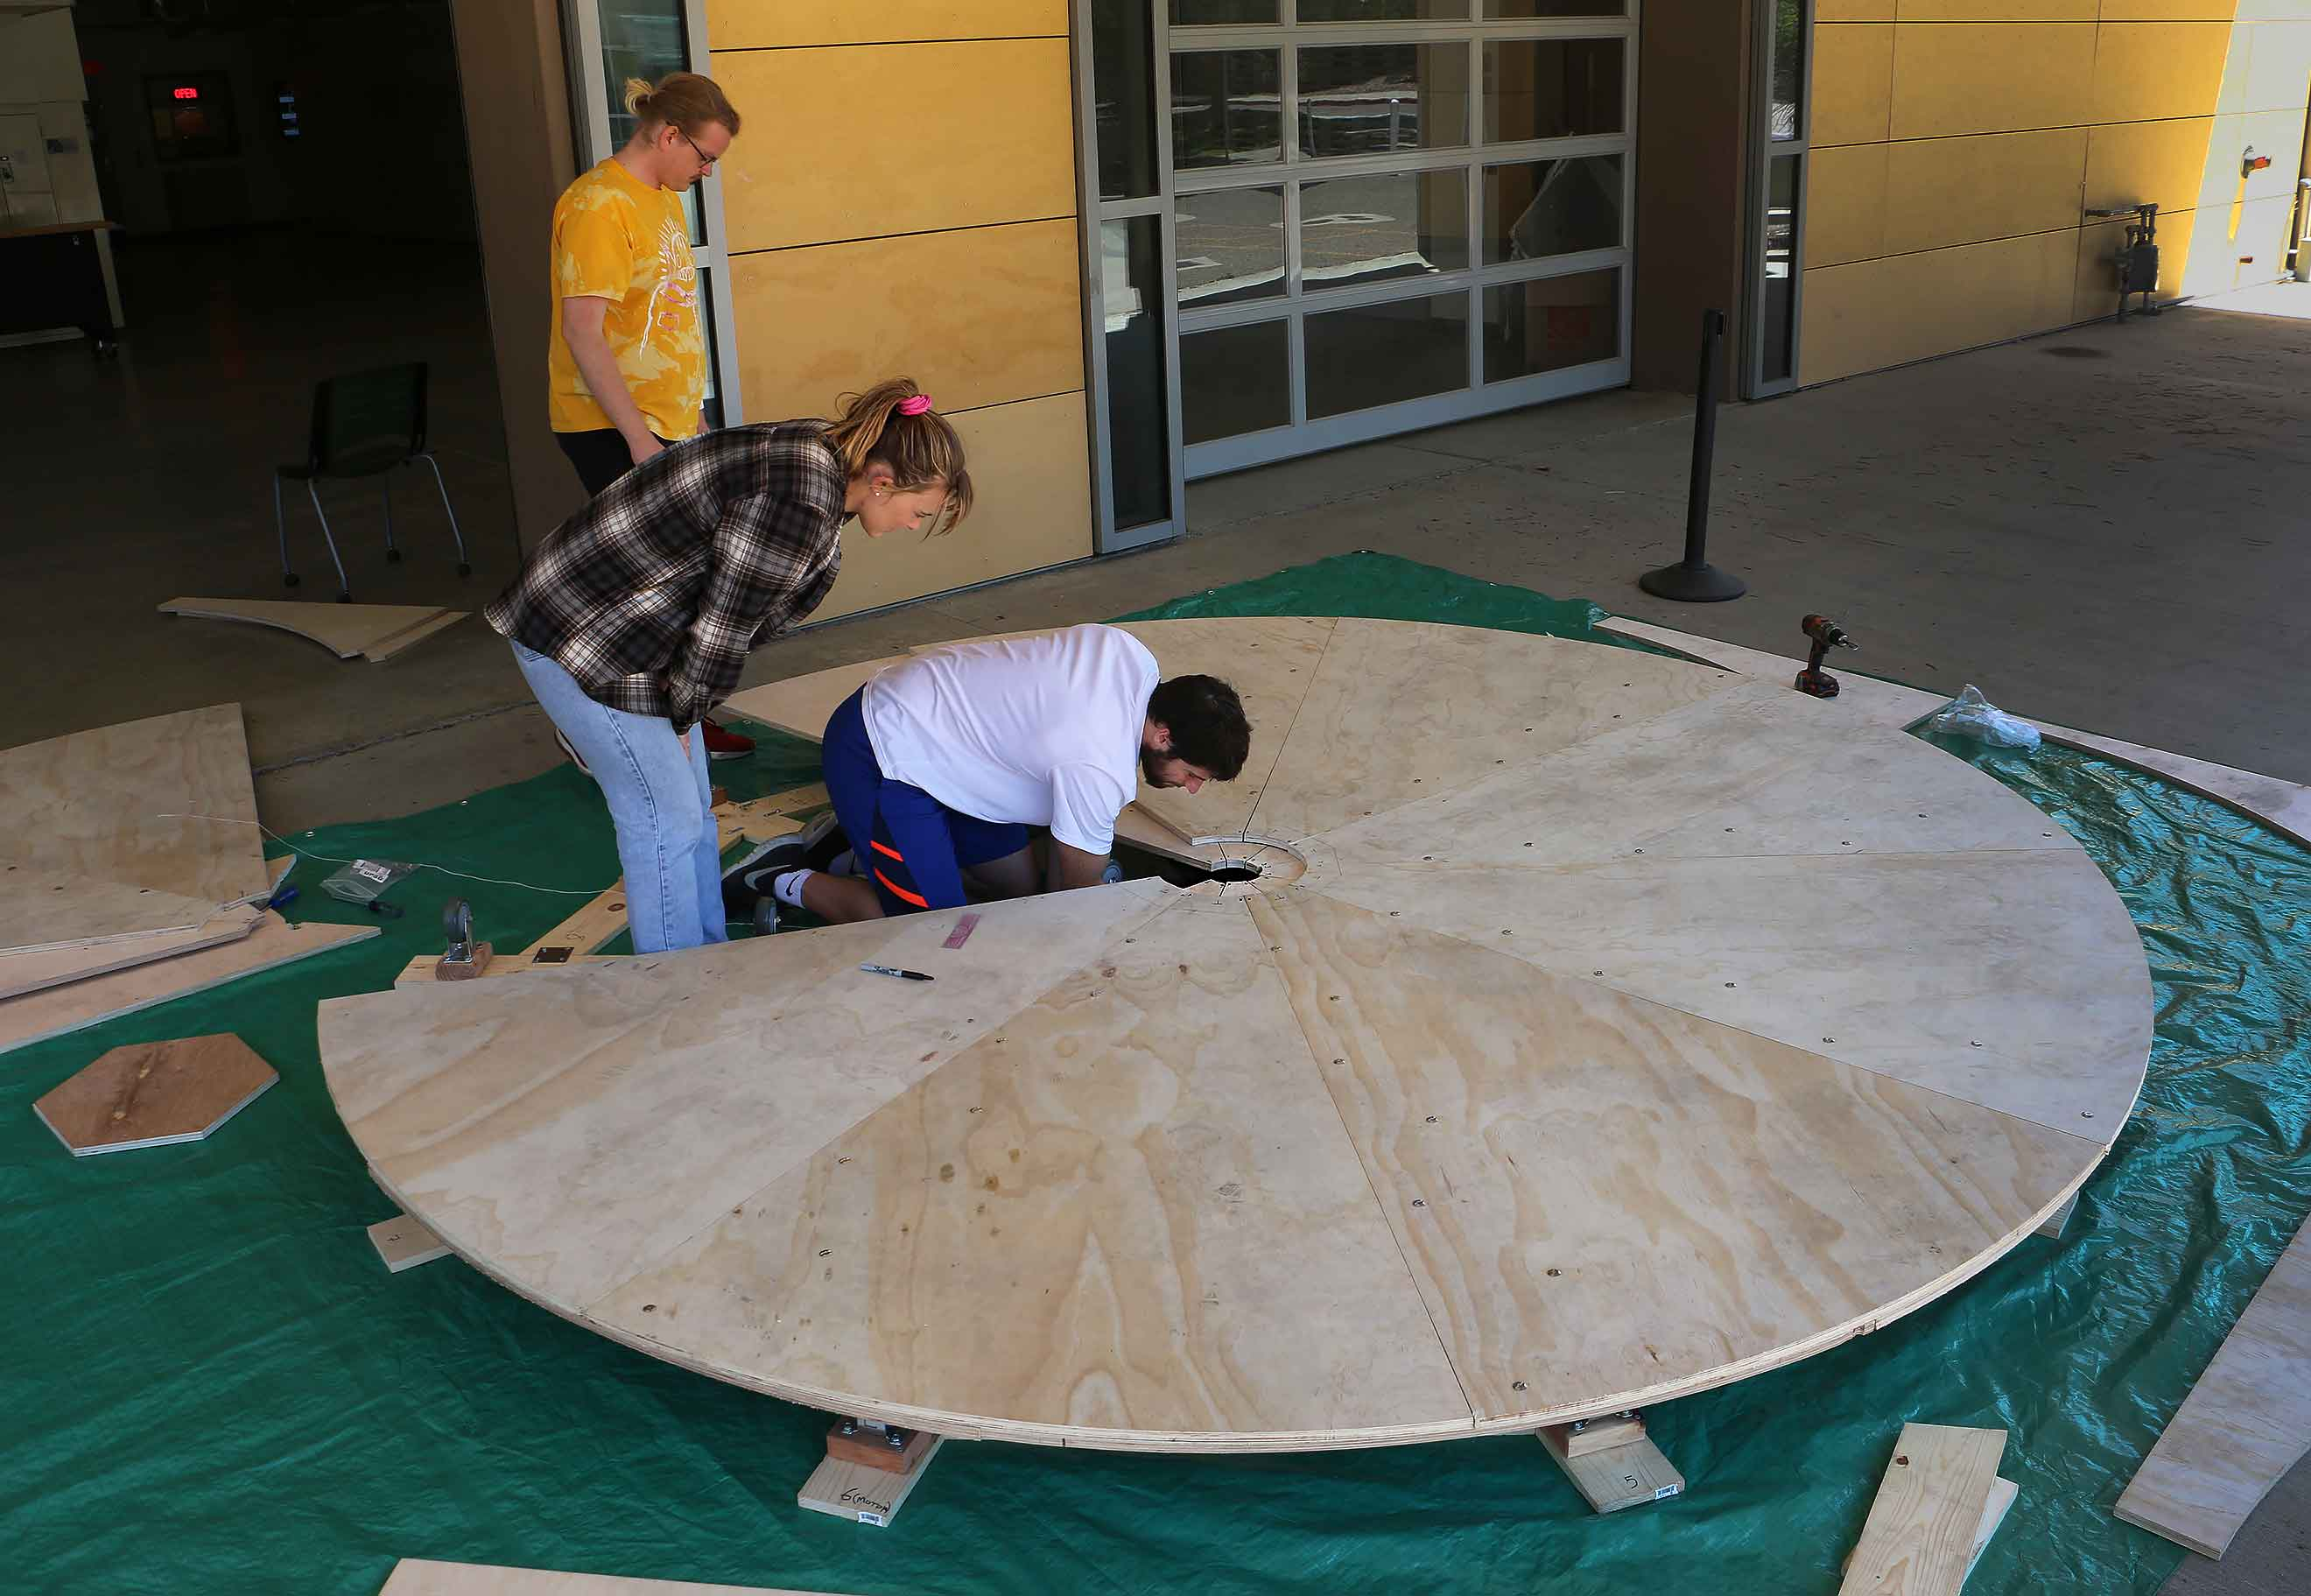 obert Reed, right, works to install a center hub that will make a motorized circular stage rotate. Also helping with the stage, which will be used for a student production later this month, are Isaac Becker, left, and Caroline Whelan, and Liam Martinez (not pictured).